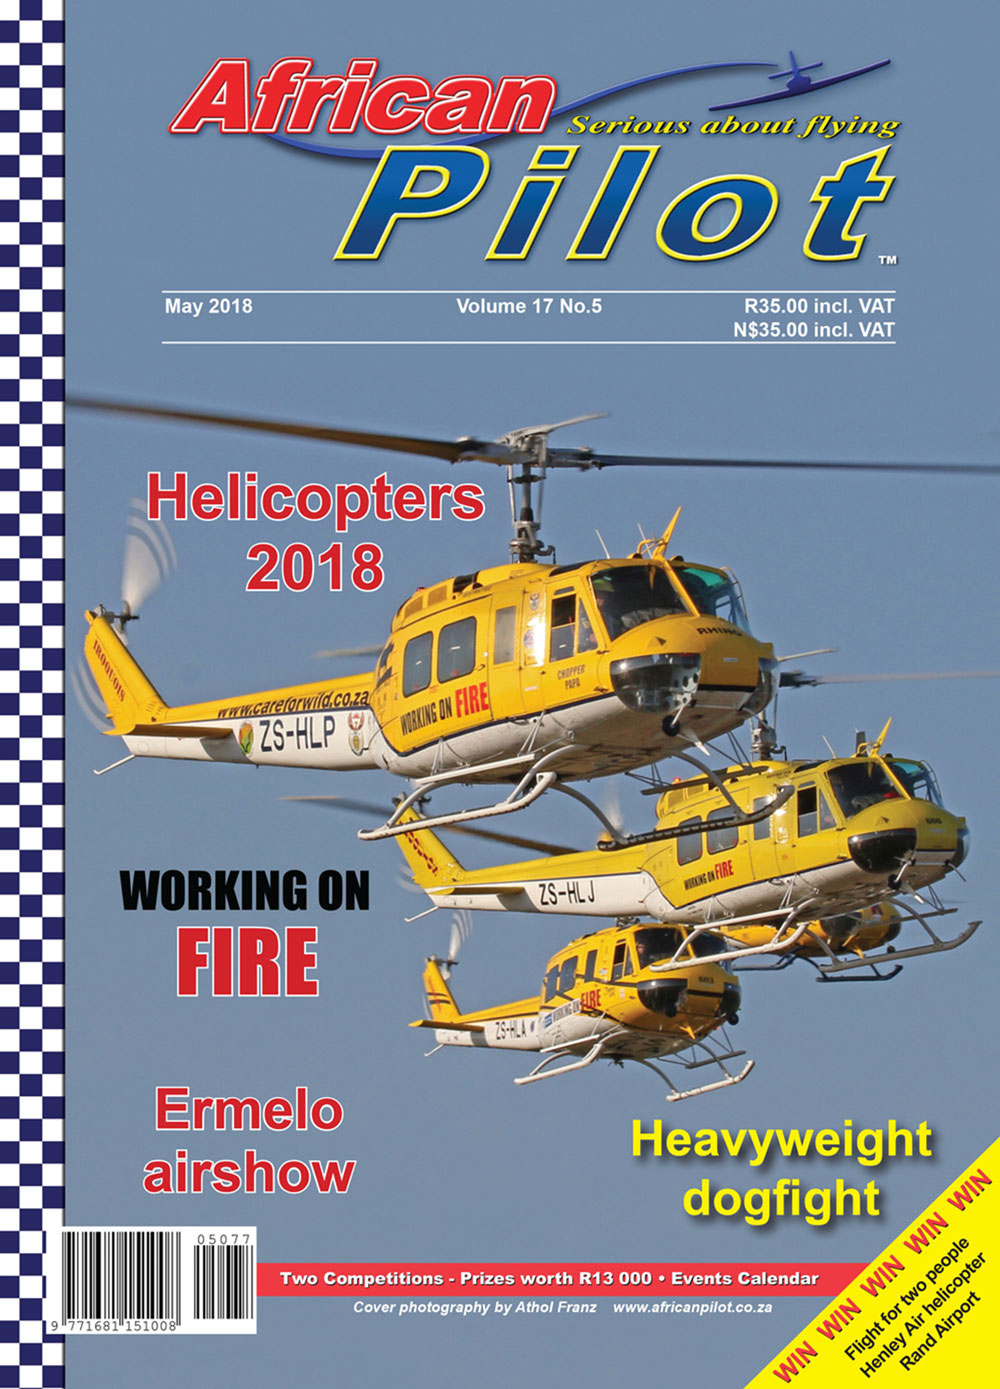 African Pilot May 2018 Issue